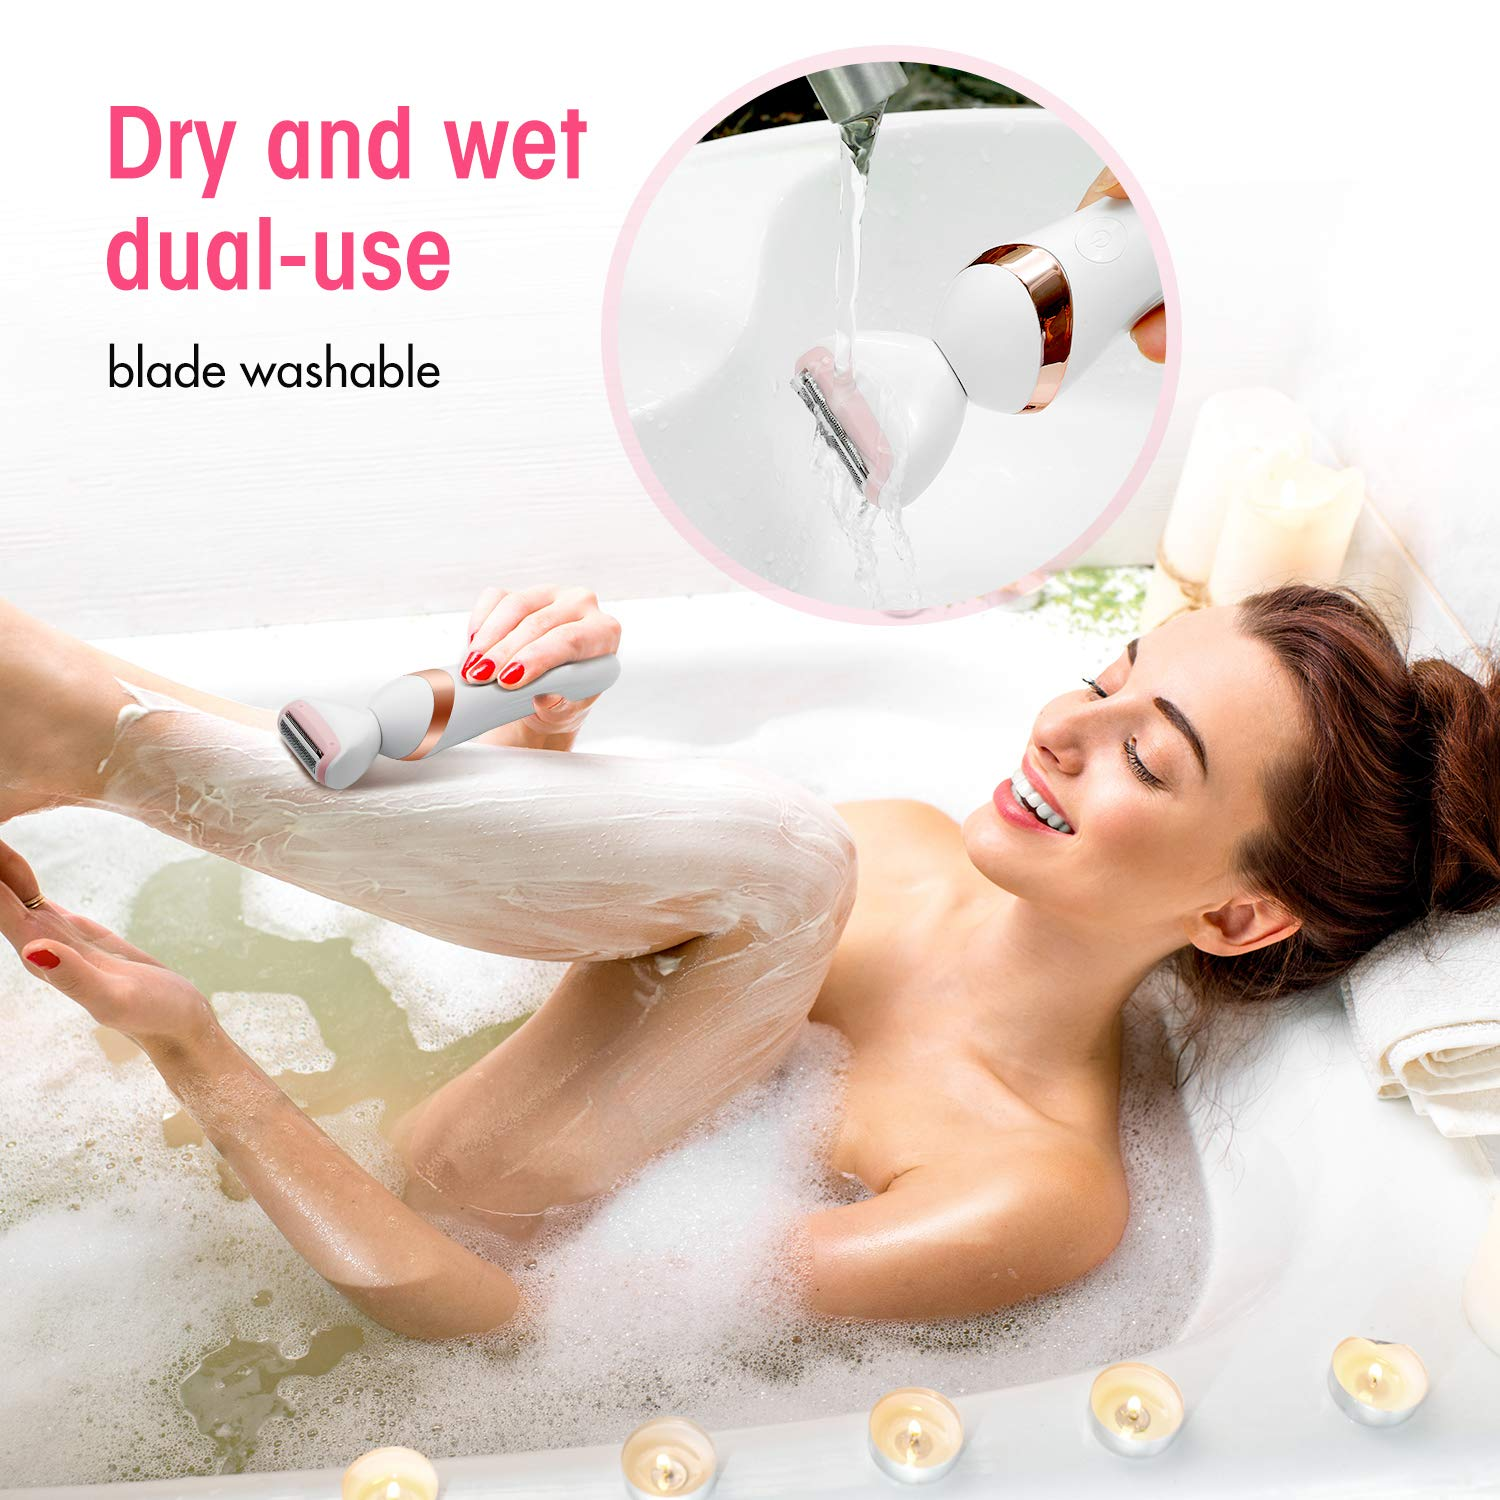 3-In-1 Women's Electric Razor, Multi-Function Waterproof Cordless Rechargeable Shaver Set